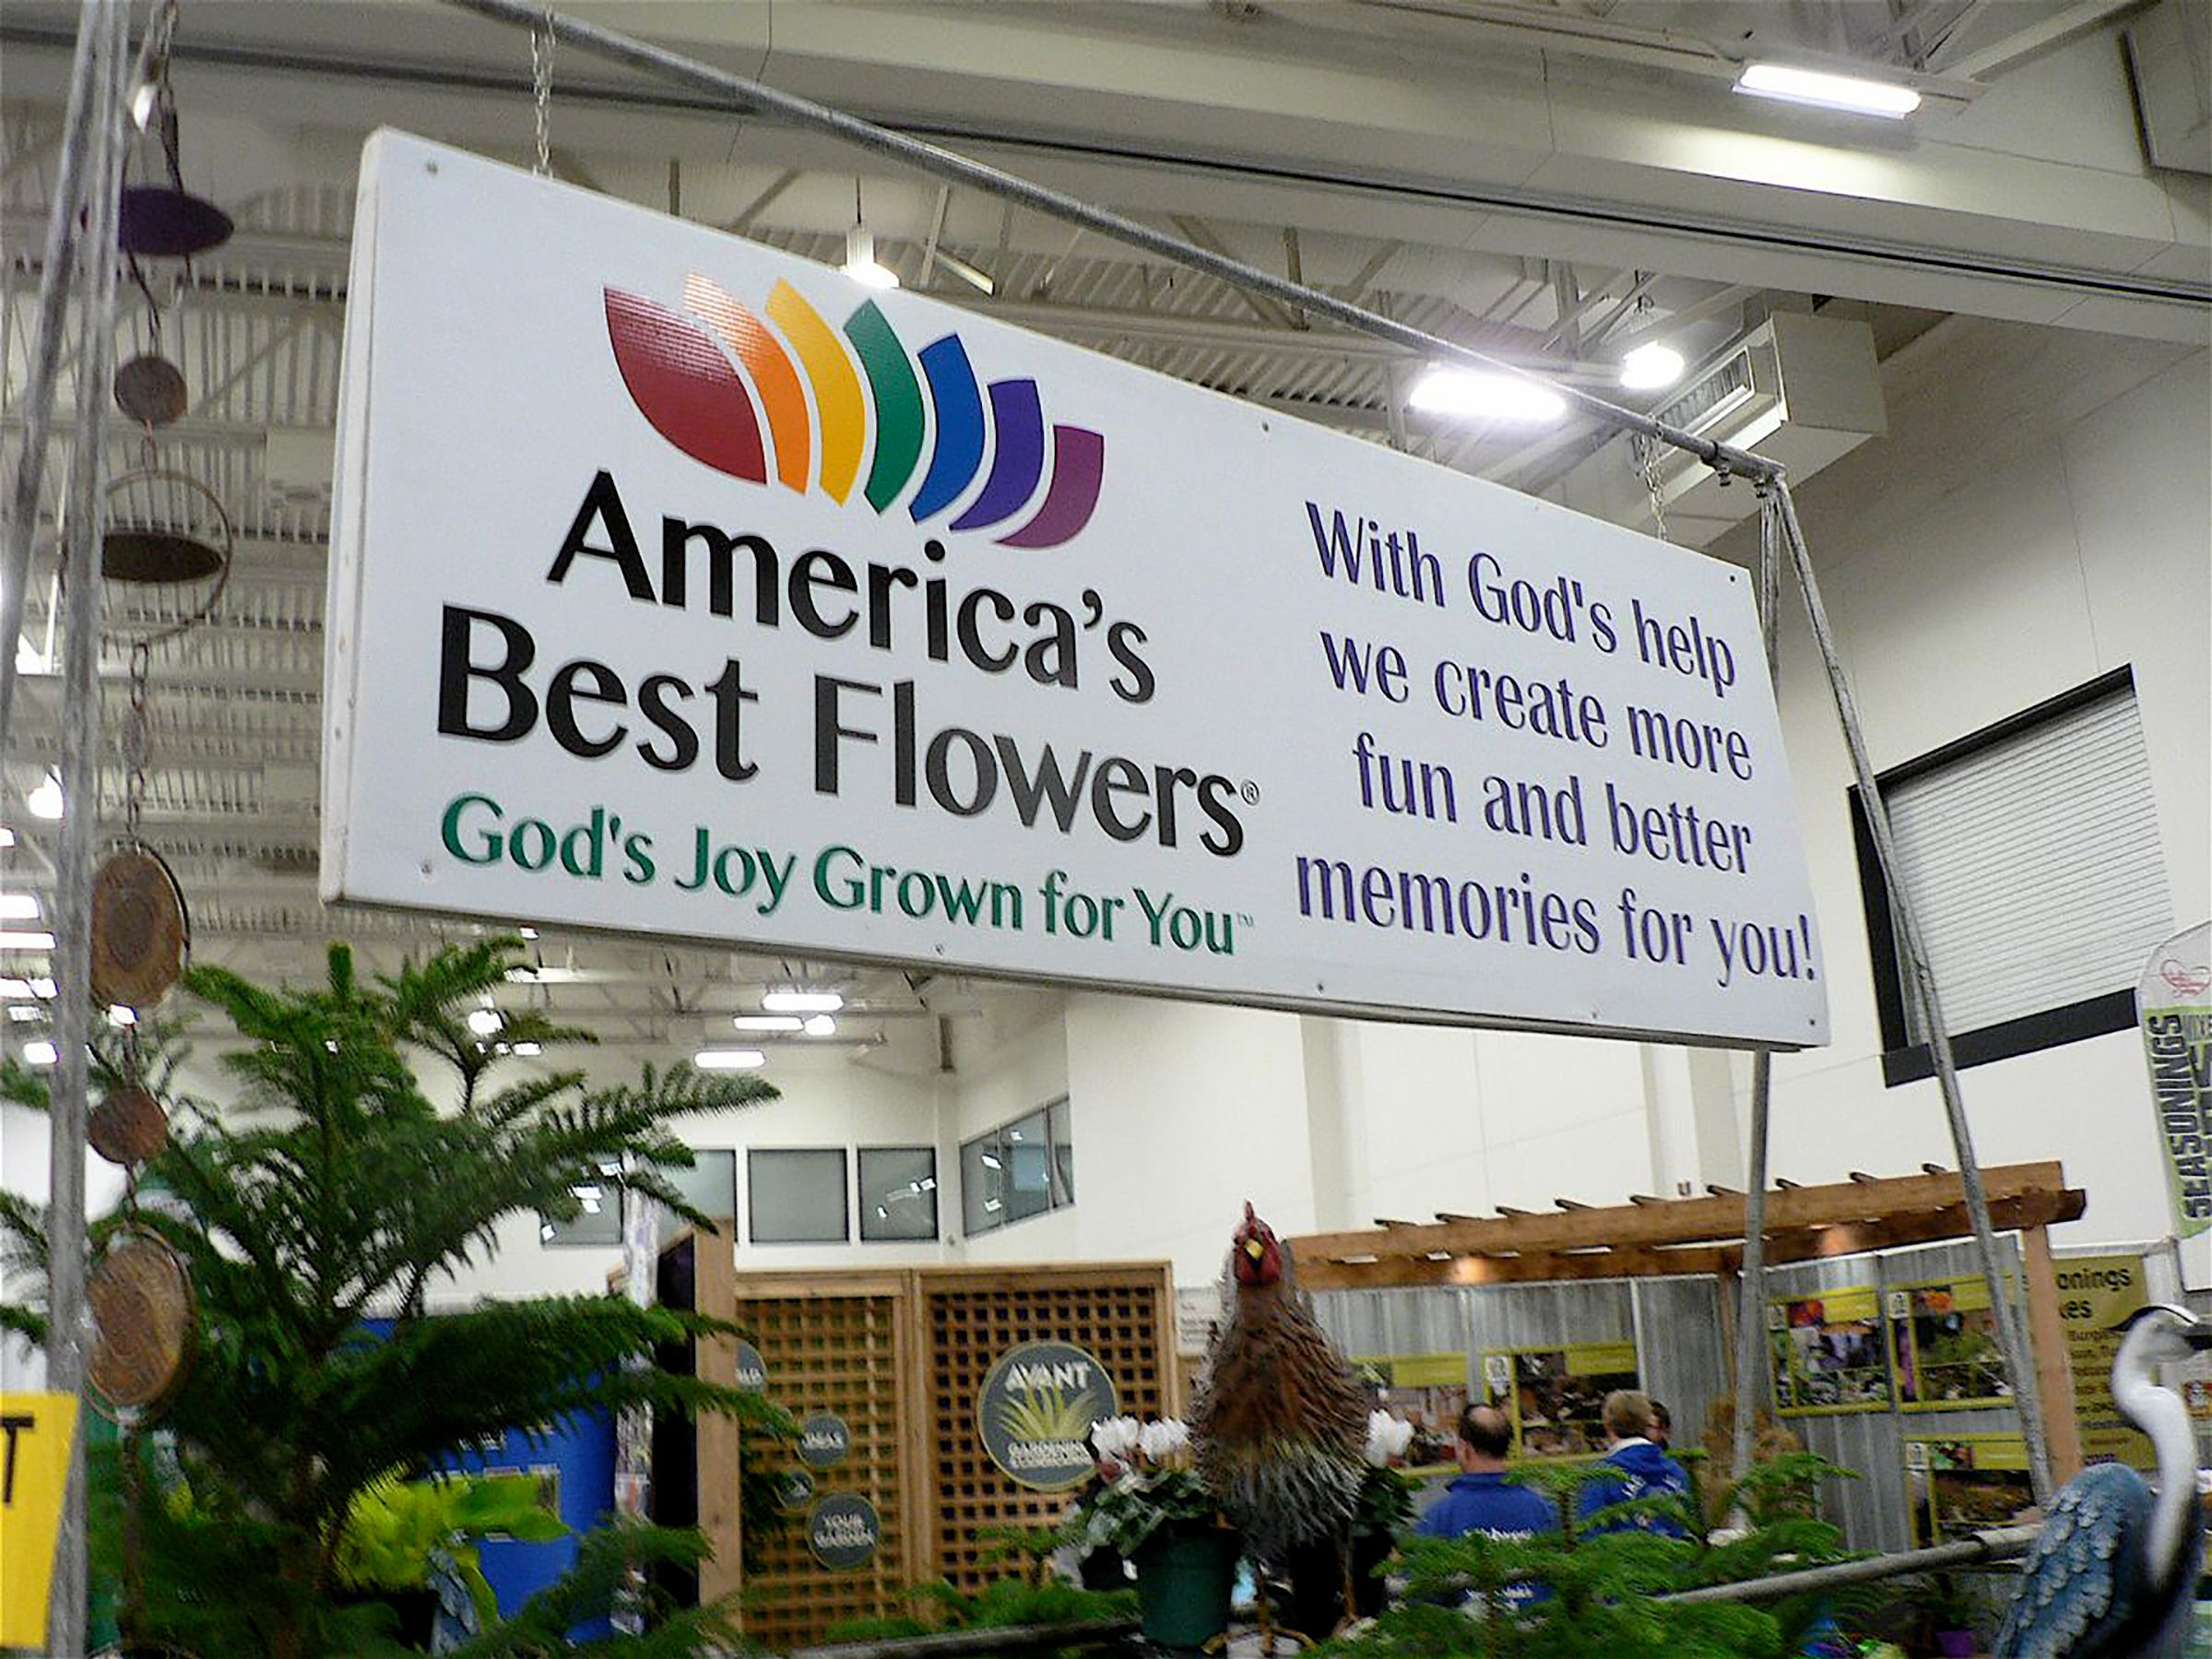 Ed Knapton owner of America;s Best Flowers was unable to attend as he continues to battle cancer.